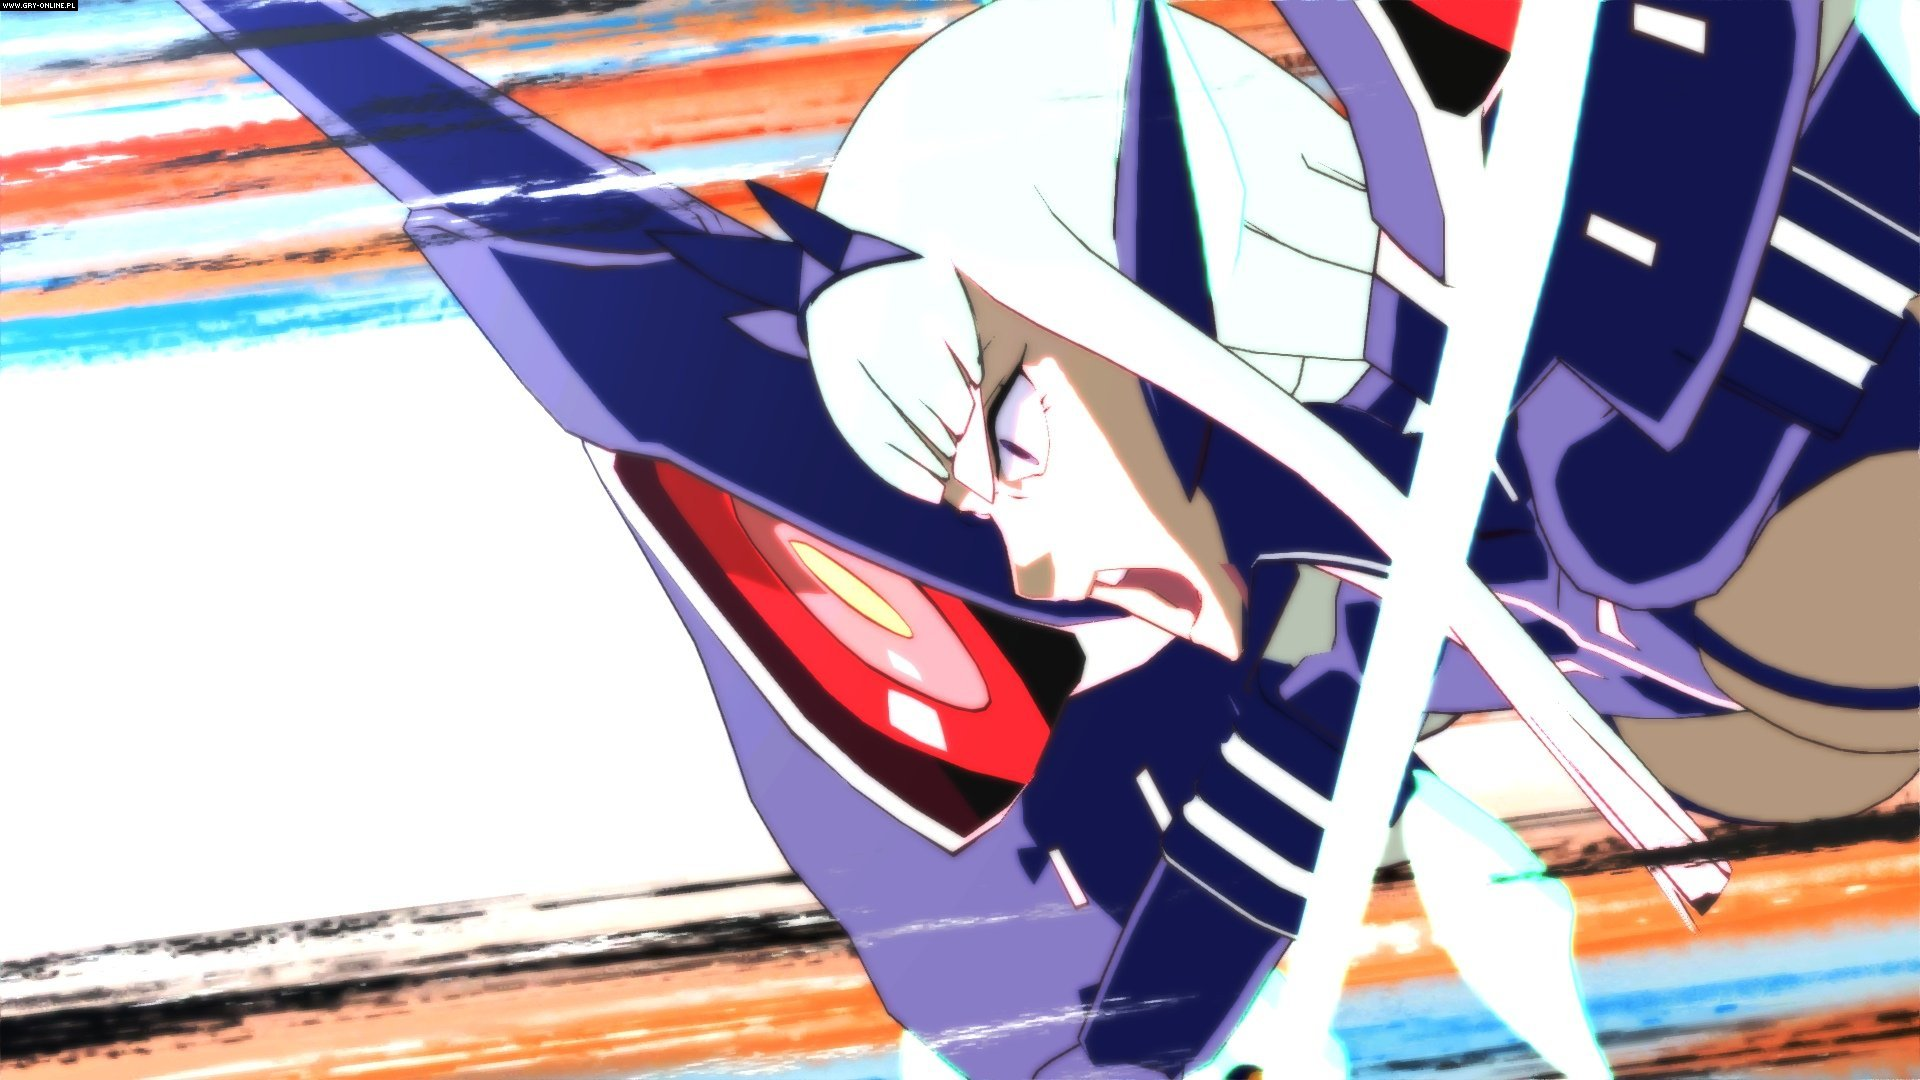 Kill la Kill: IF PC, PS4 Games Image 9/39, APlus Games, Arc System Works